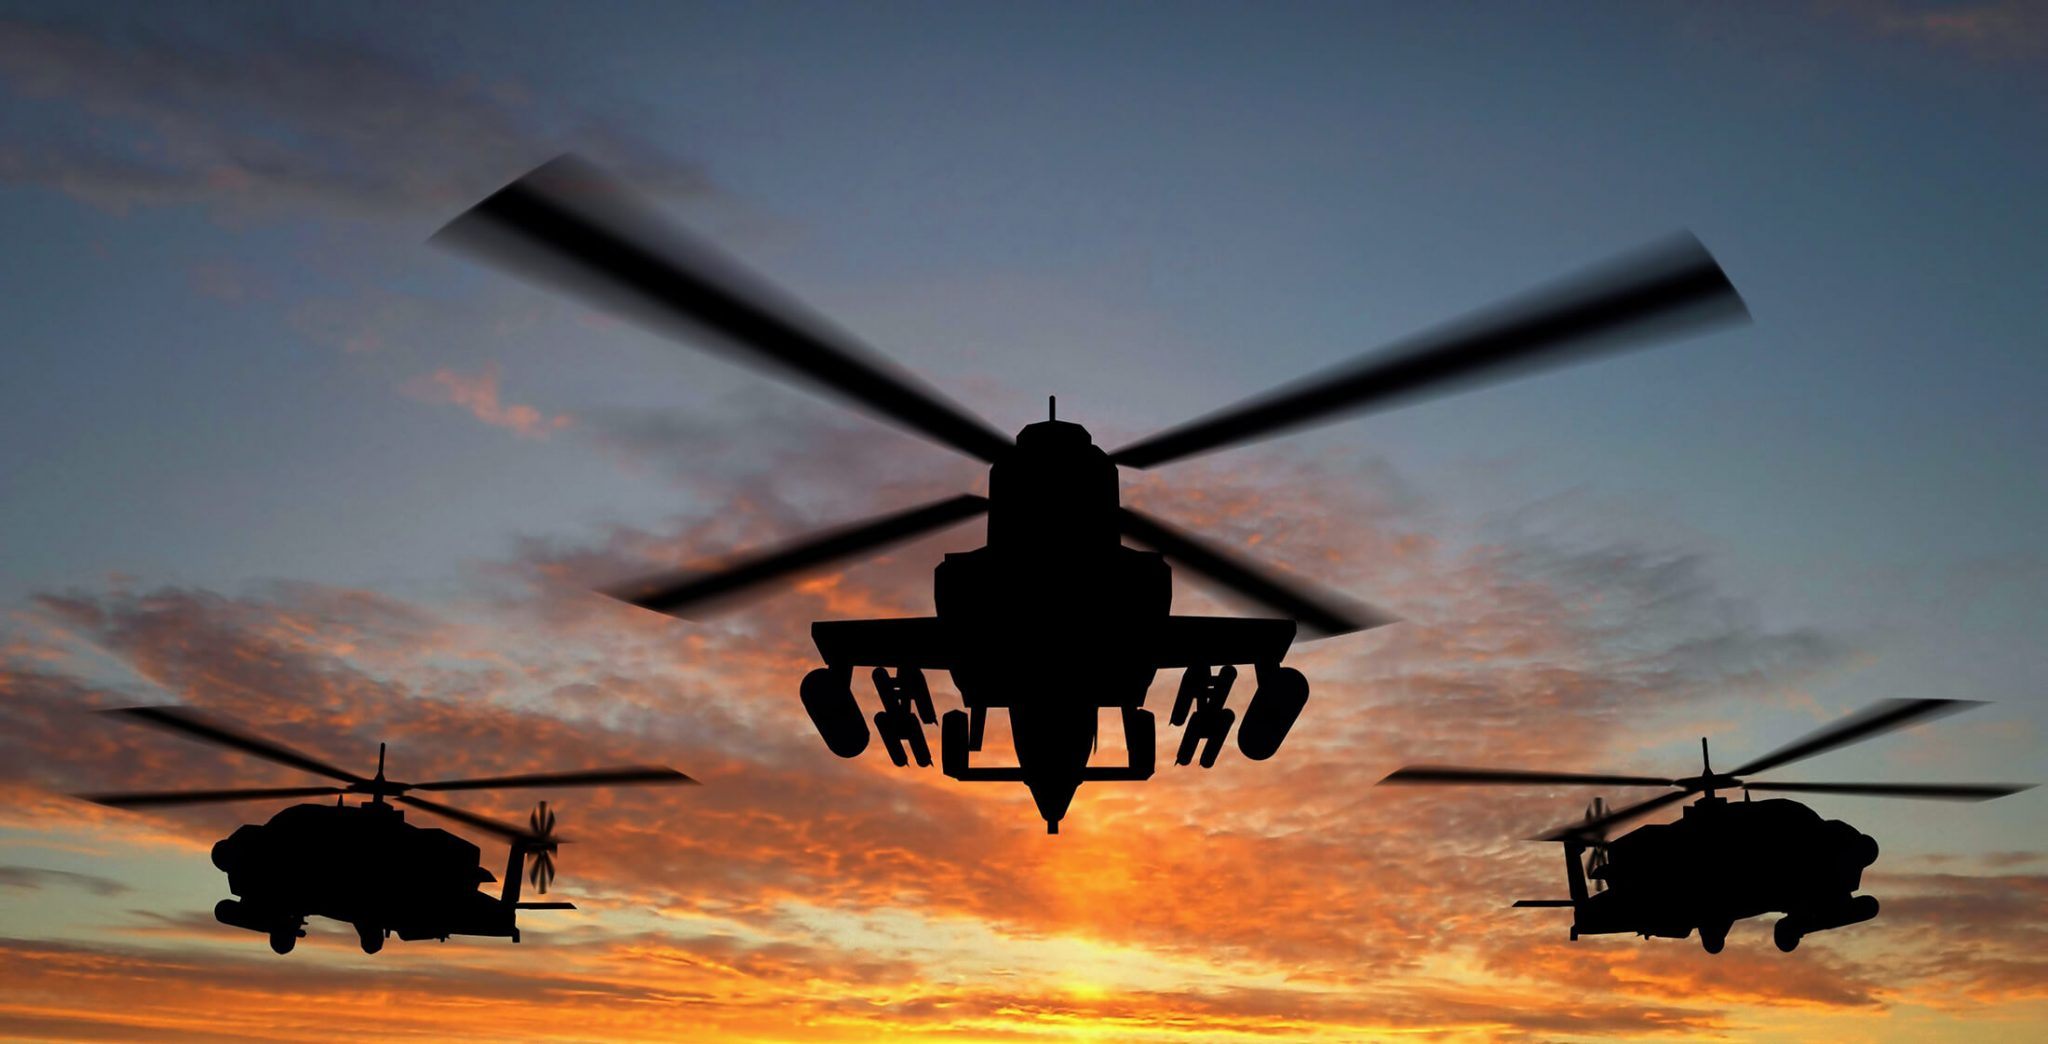 Silhouette of helicopter over sunset